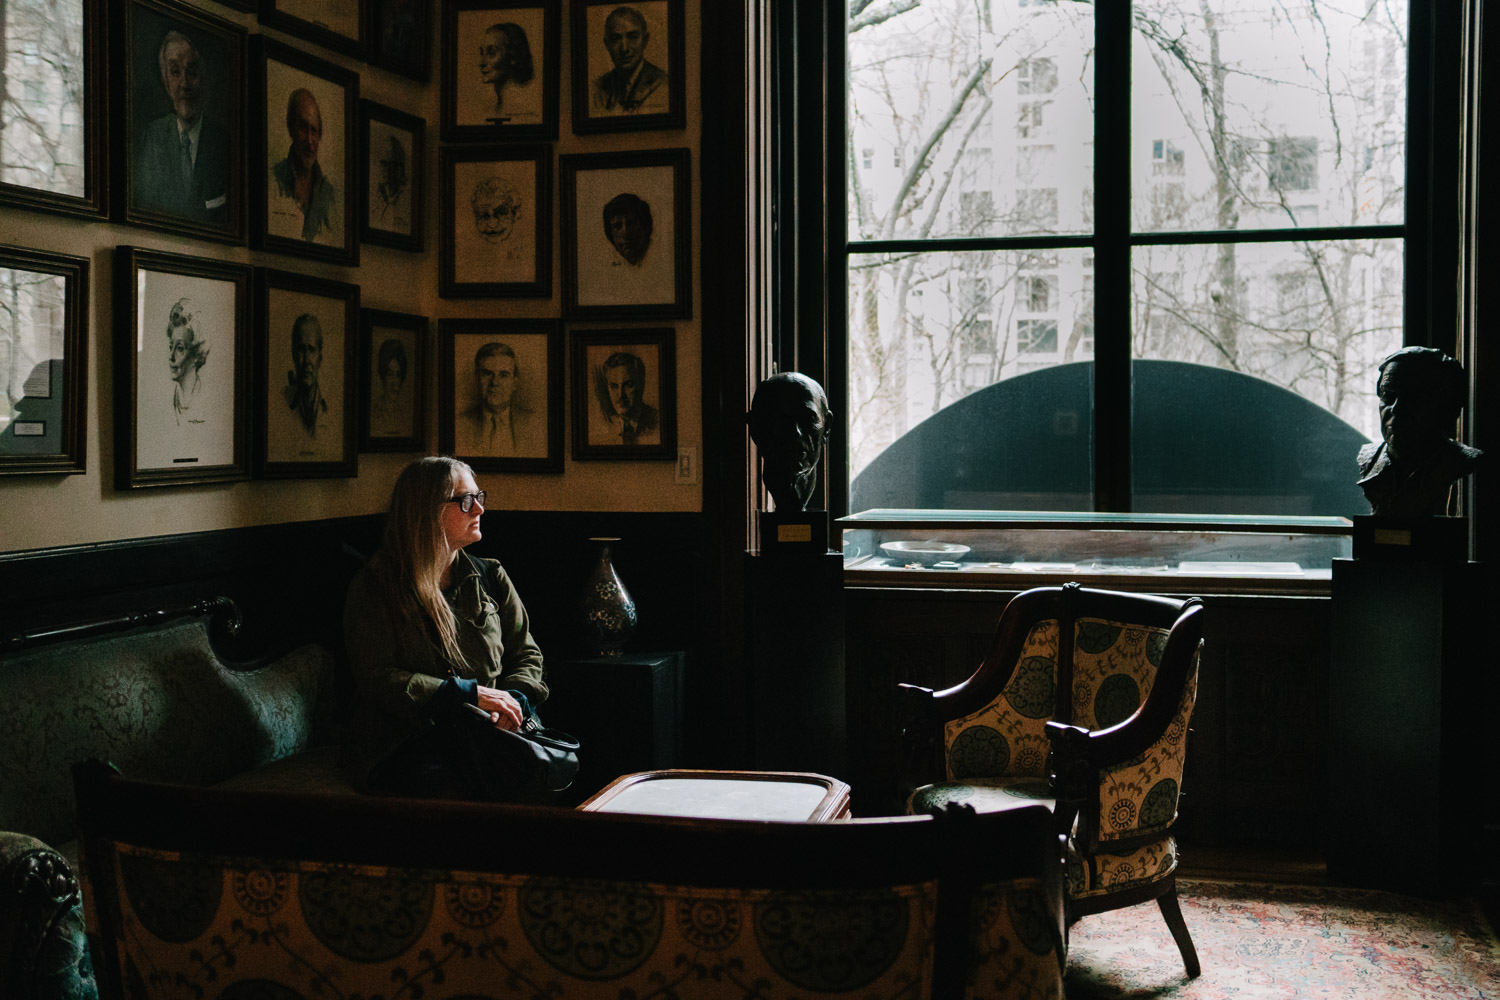 Woman seated at the National Arts Club portrait gallery.